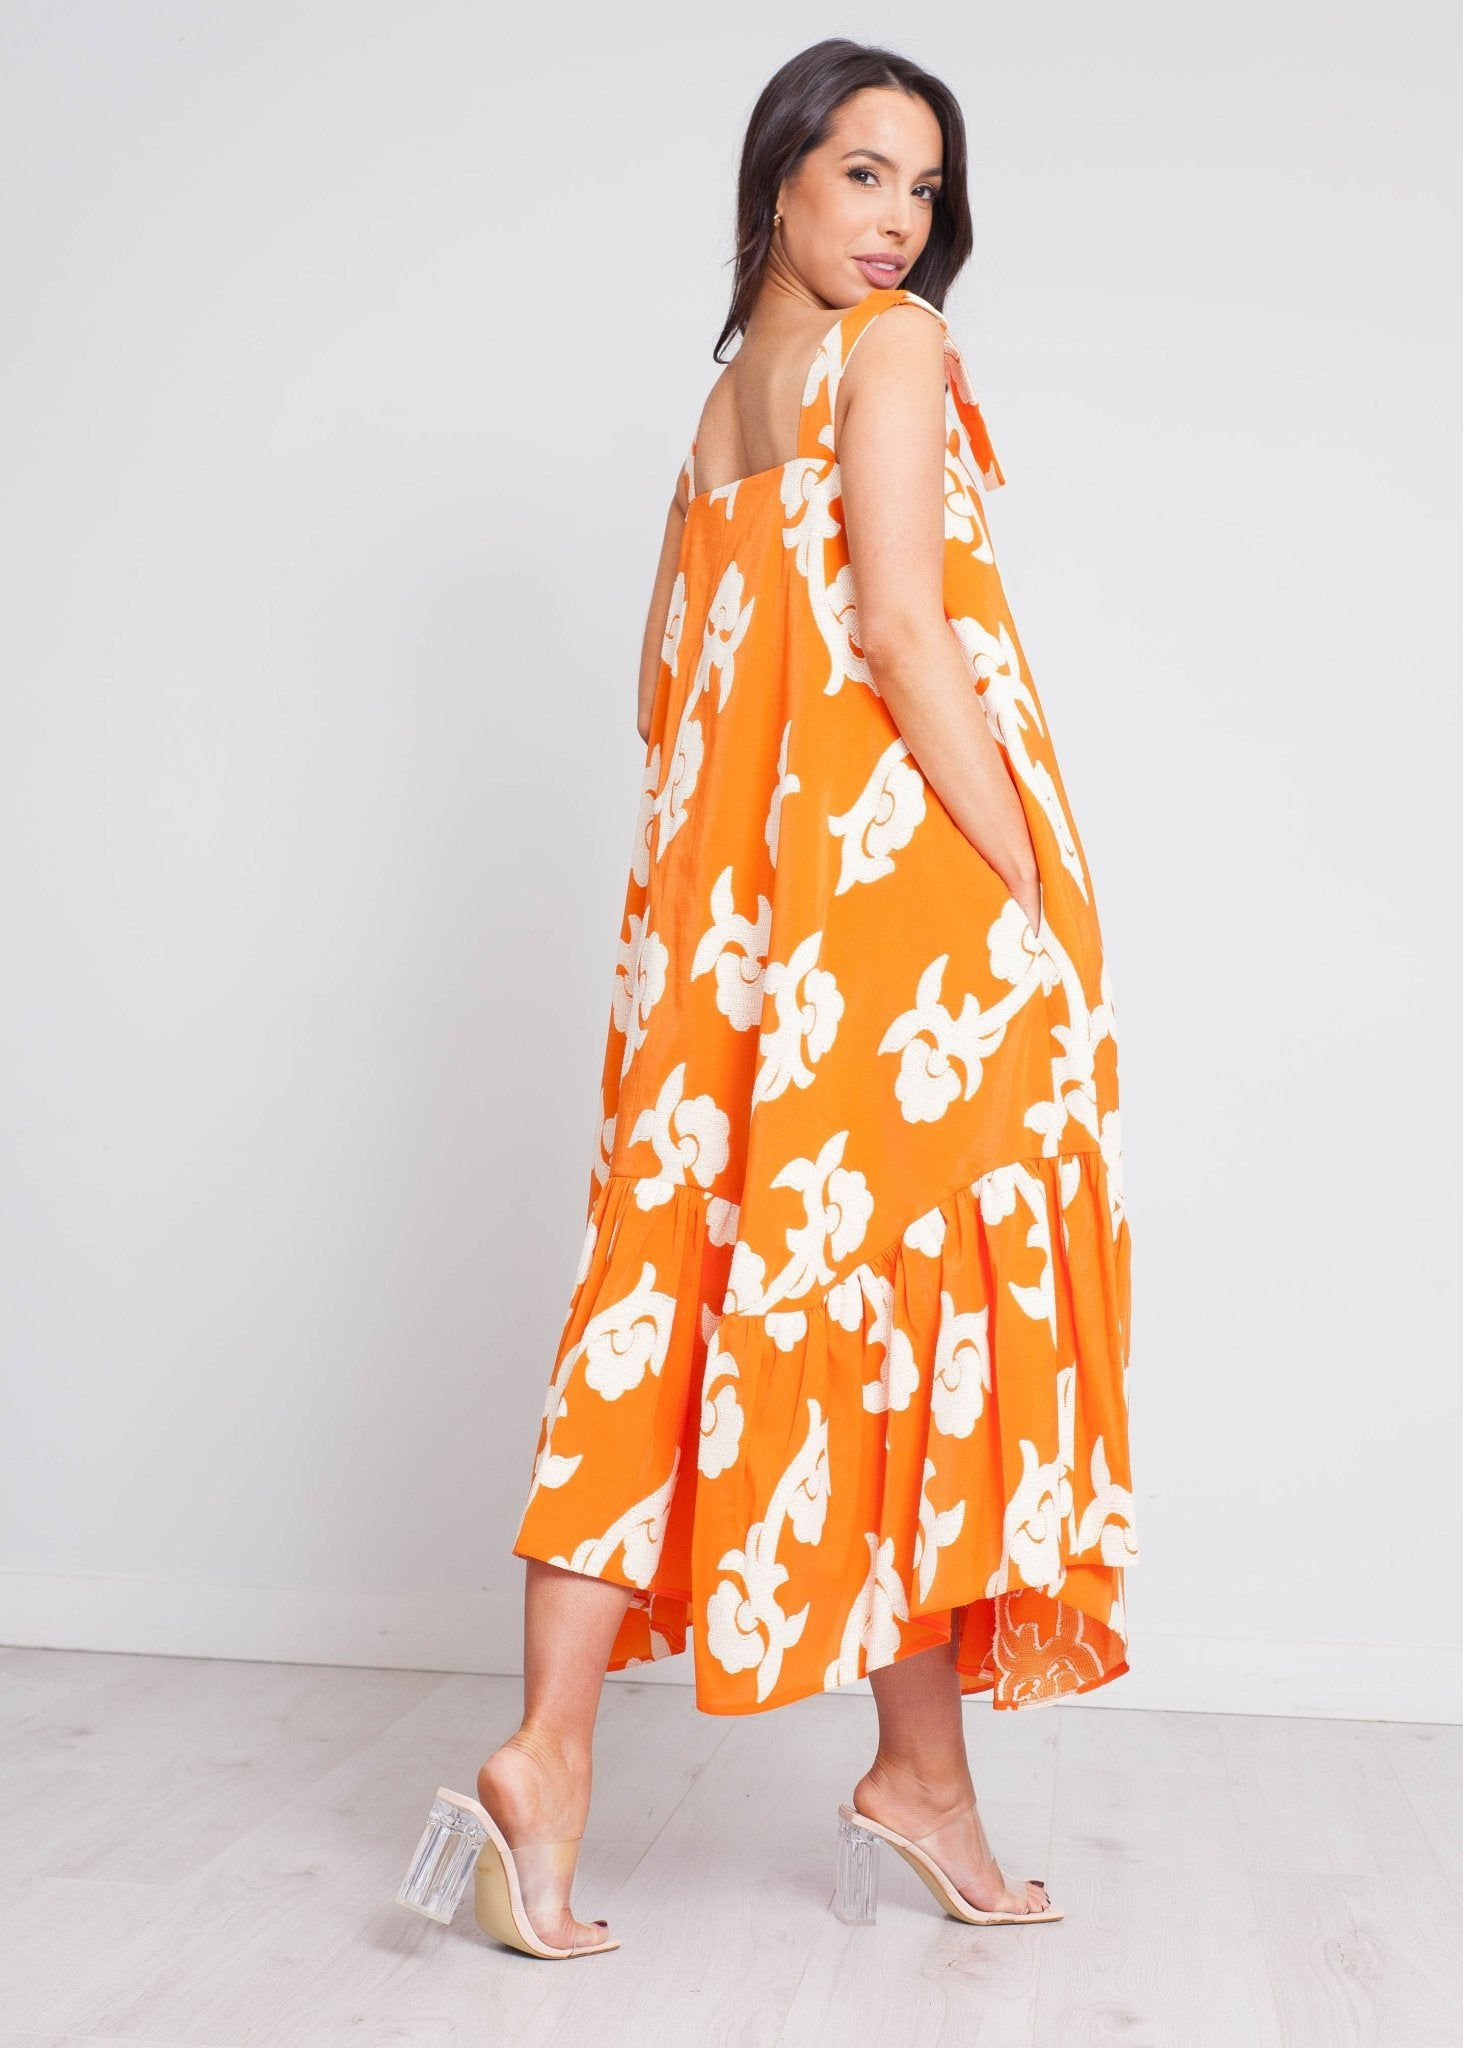 Eva Swing Dress In Orange & Cream - The Walk in Wardrobe